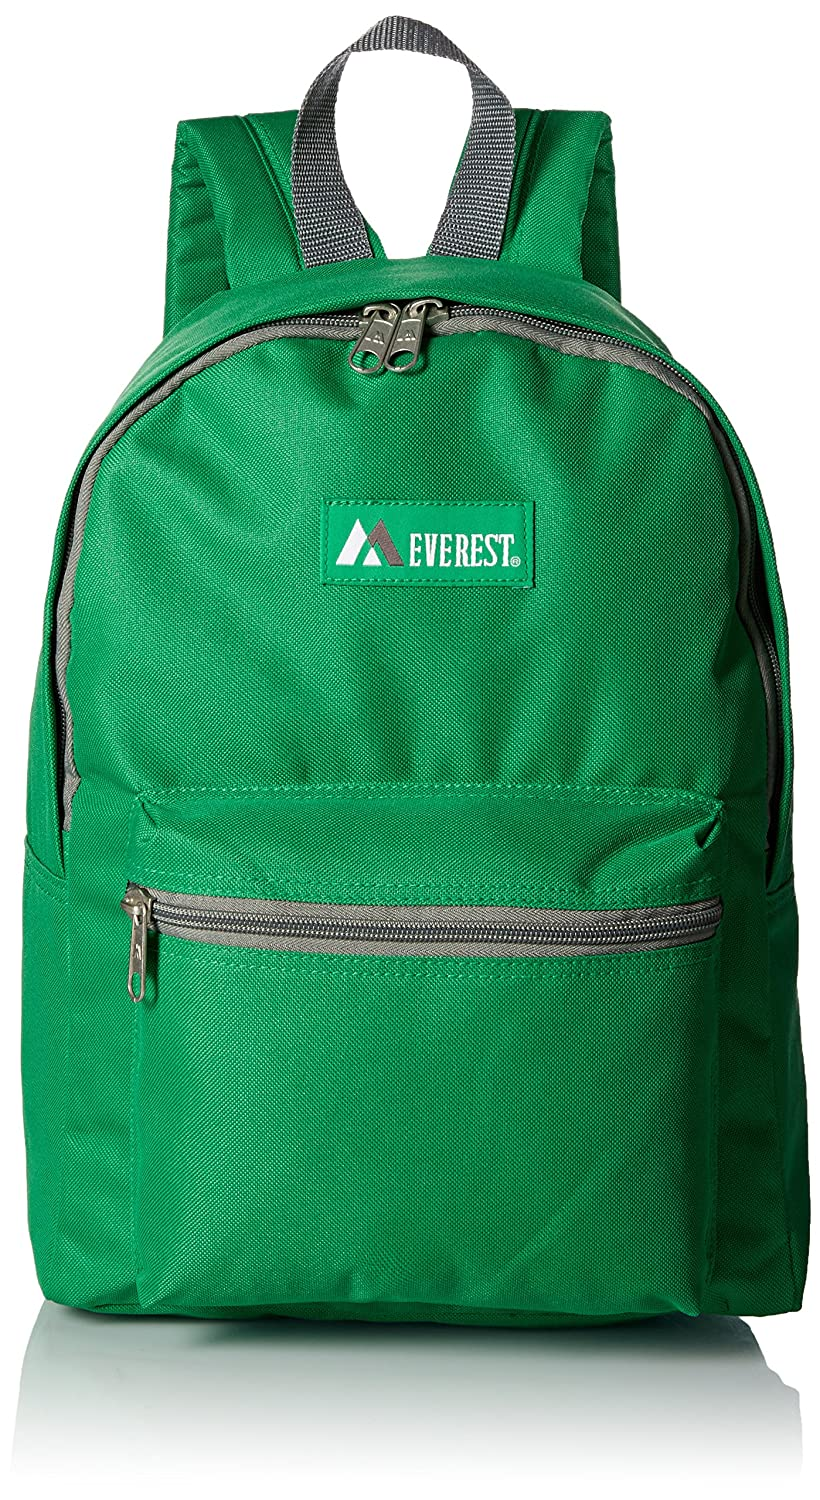 Everest Basic Backpack, Yellow, One Size EVFDS 1045K-YE